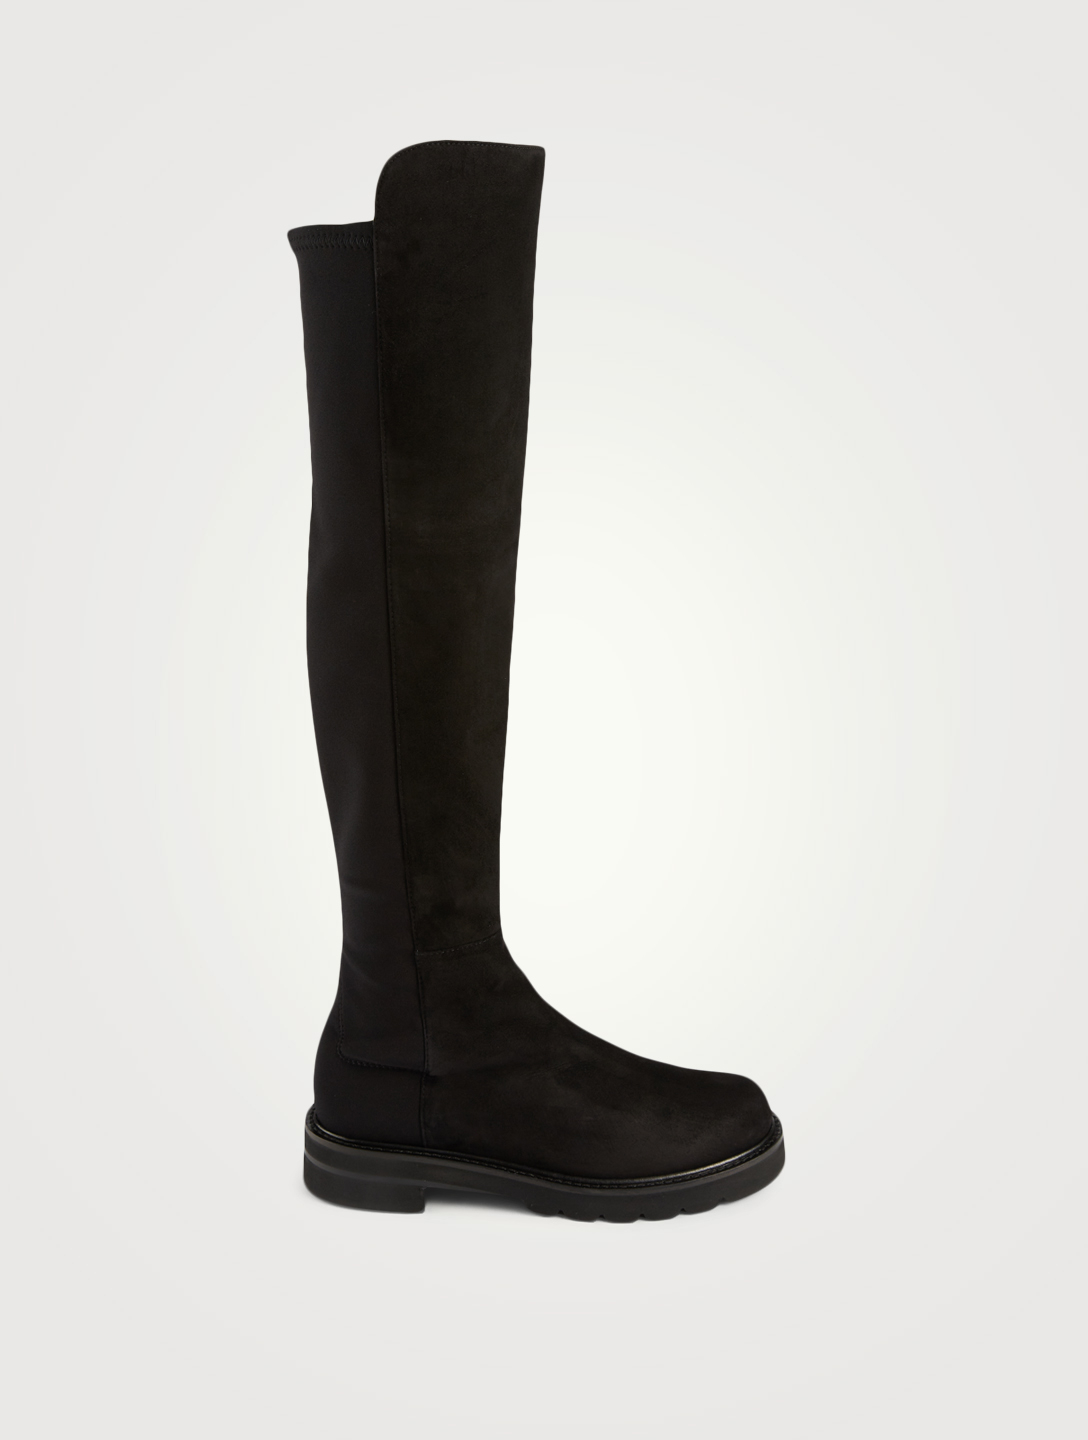 STUART WEITZMAN 5050 Lift Suede And Micro Stretch Over-The-Knee Boots Women's Black